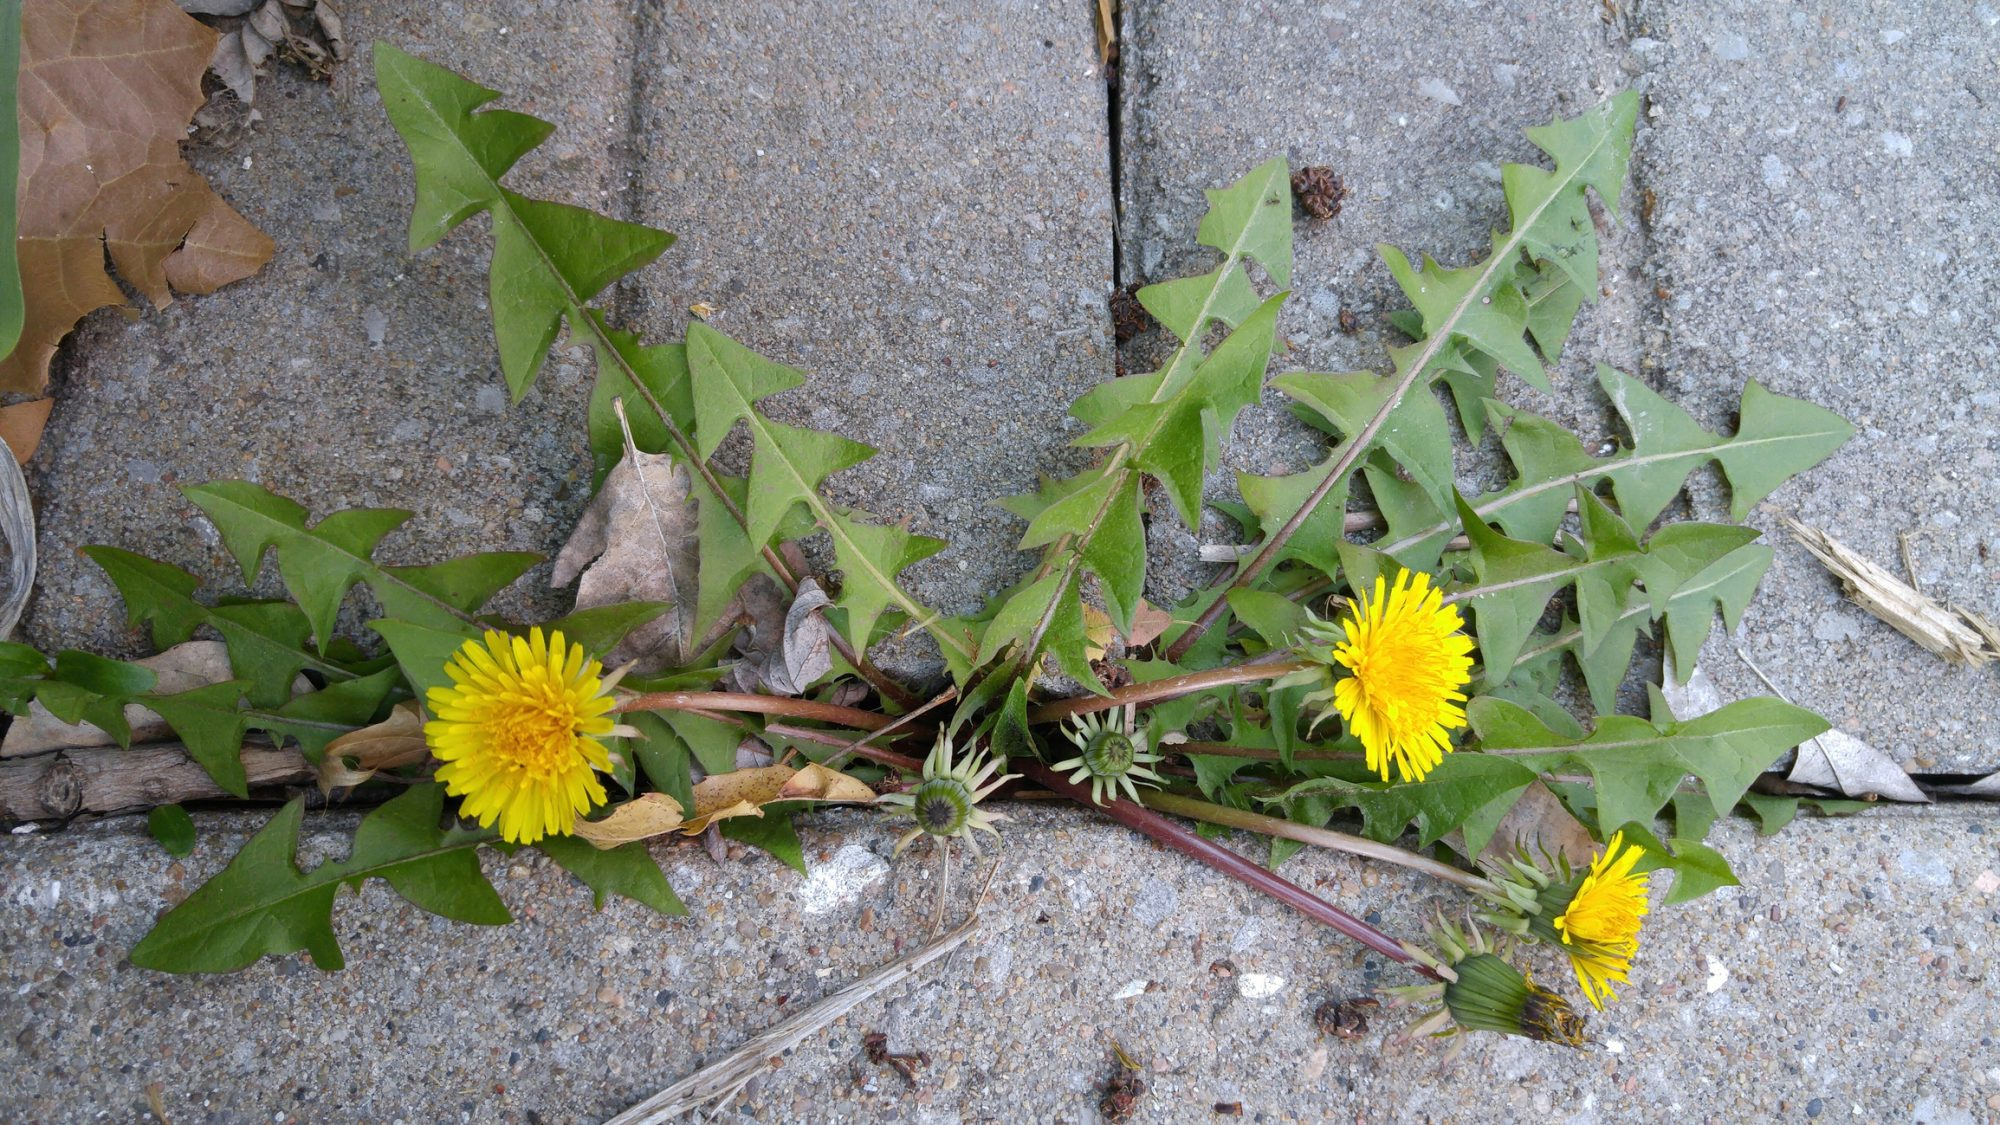 Dandelion Weeds Growing in Patio